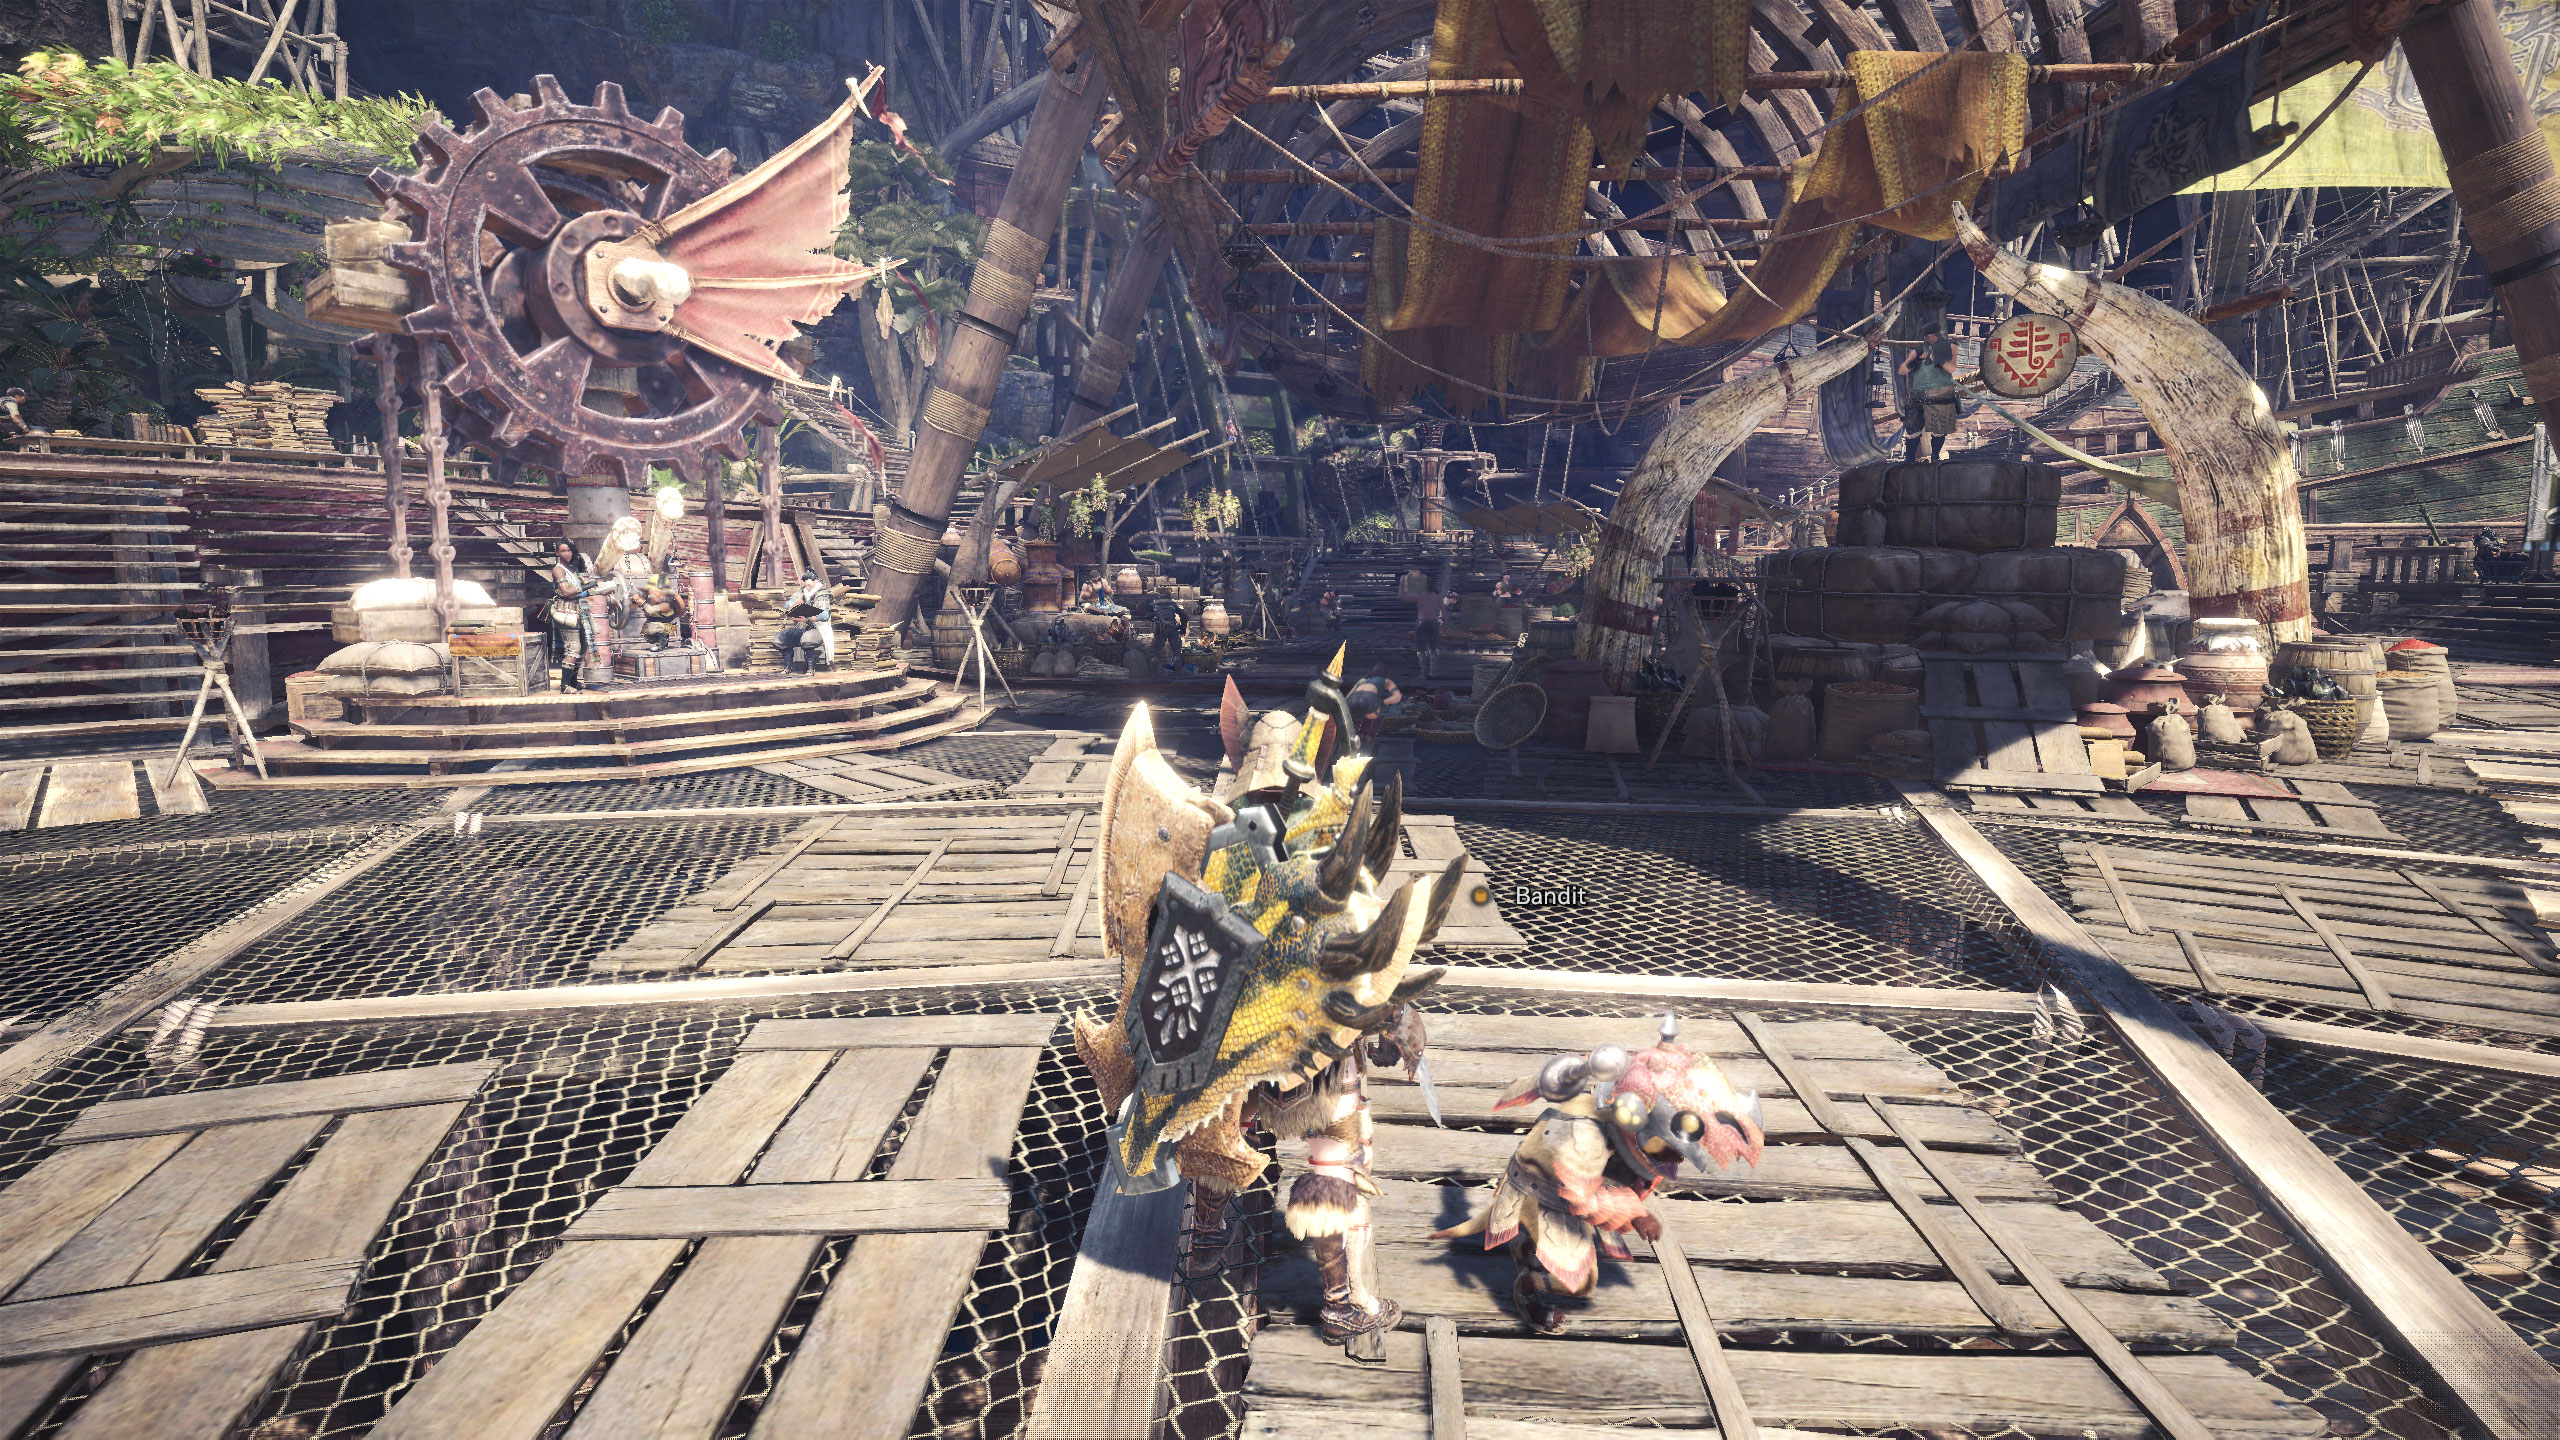 Monster Hunter: World PC requirements and what you need for 60 fps